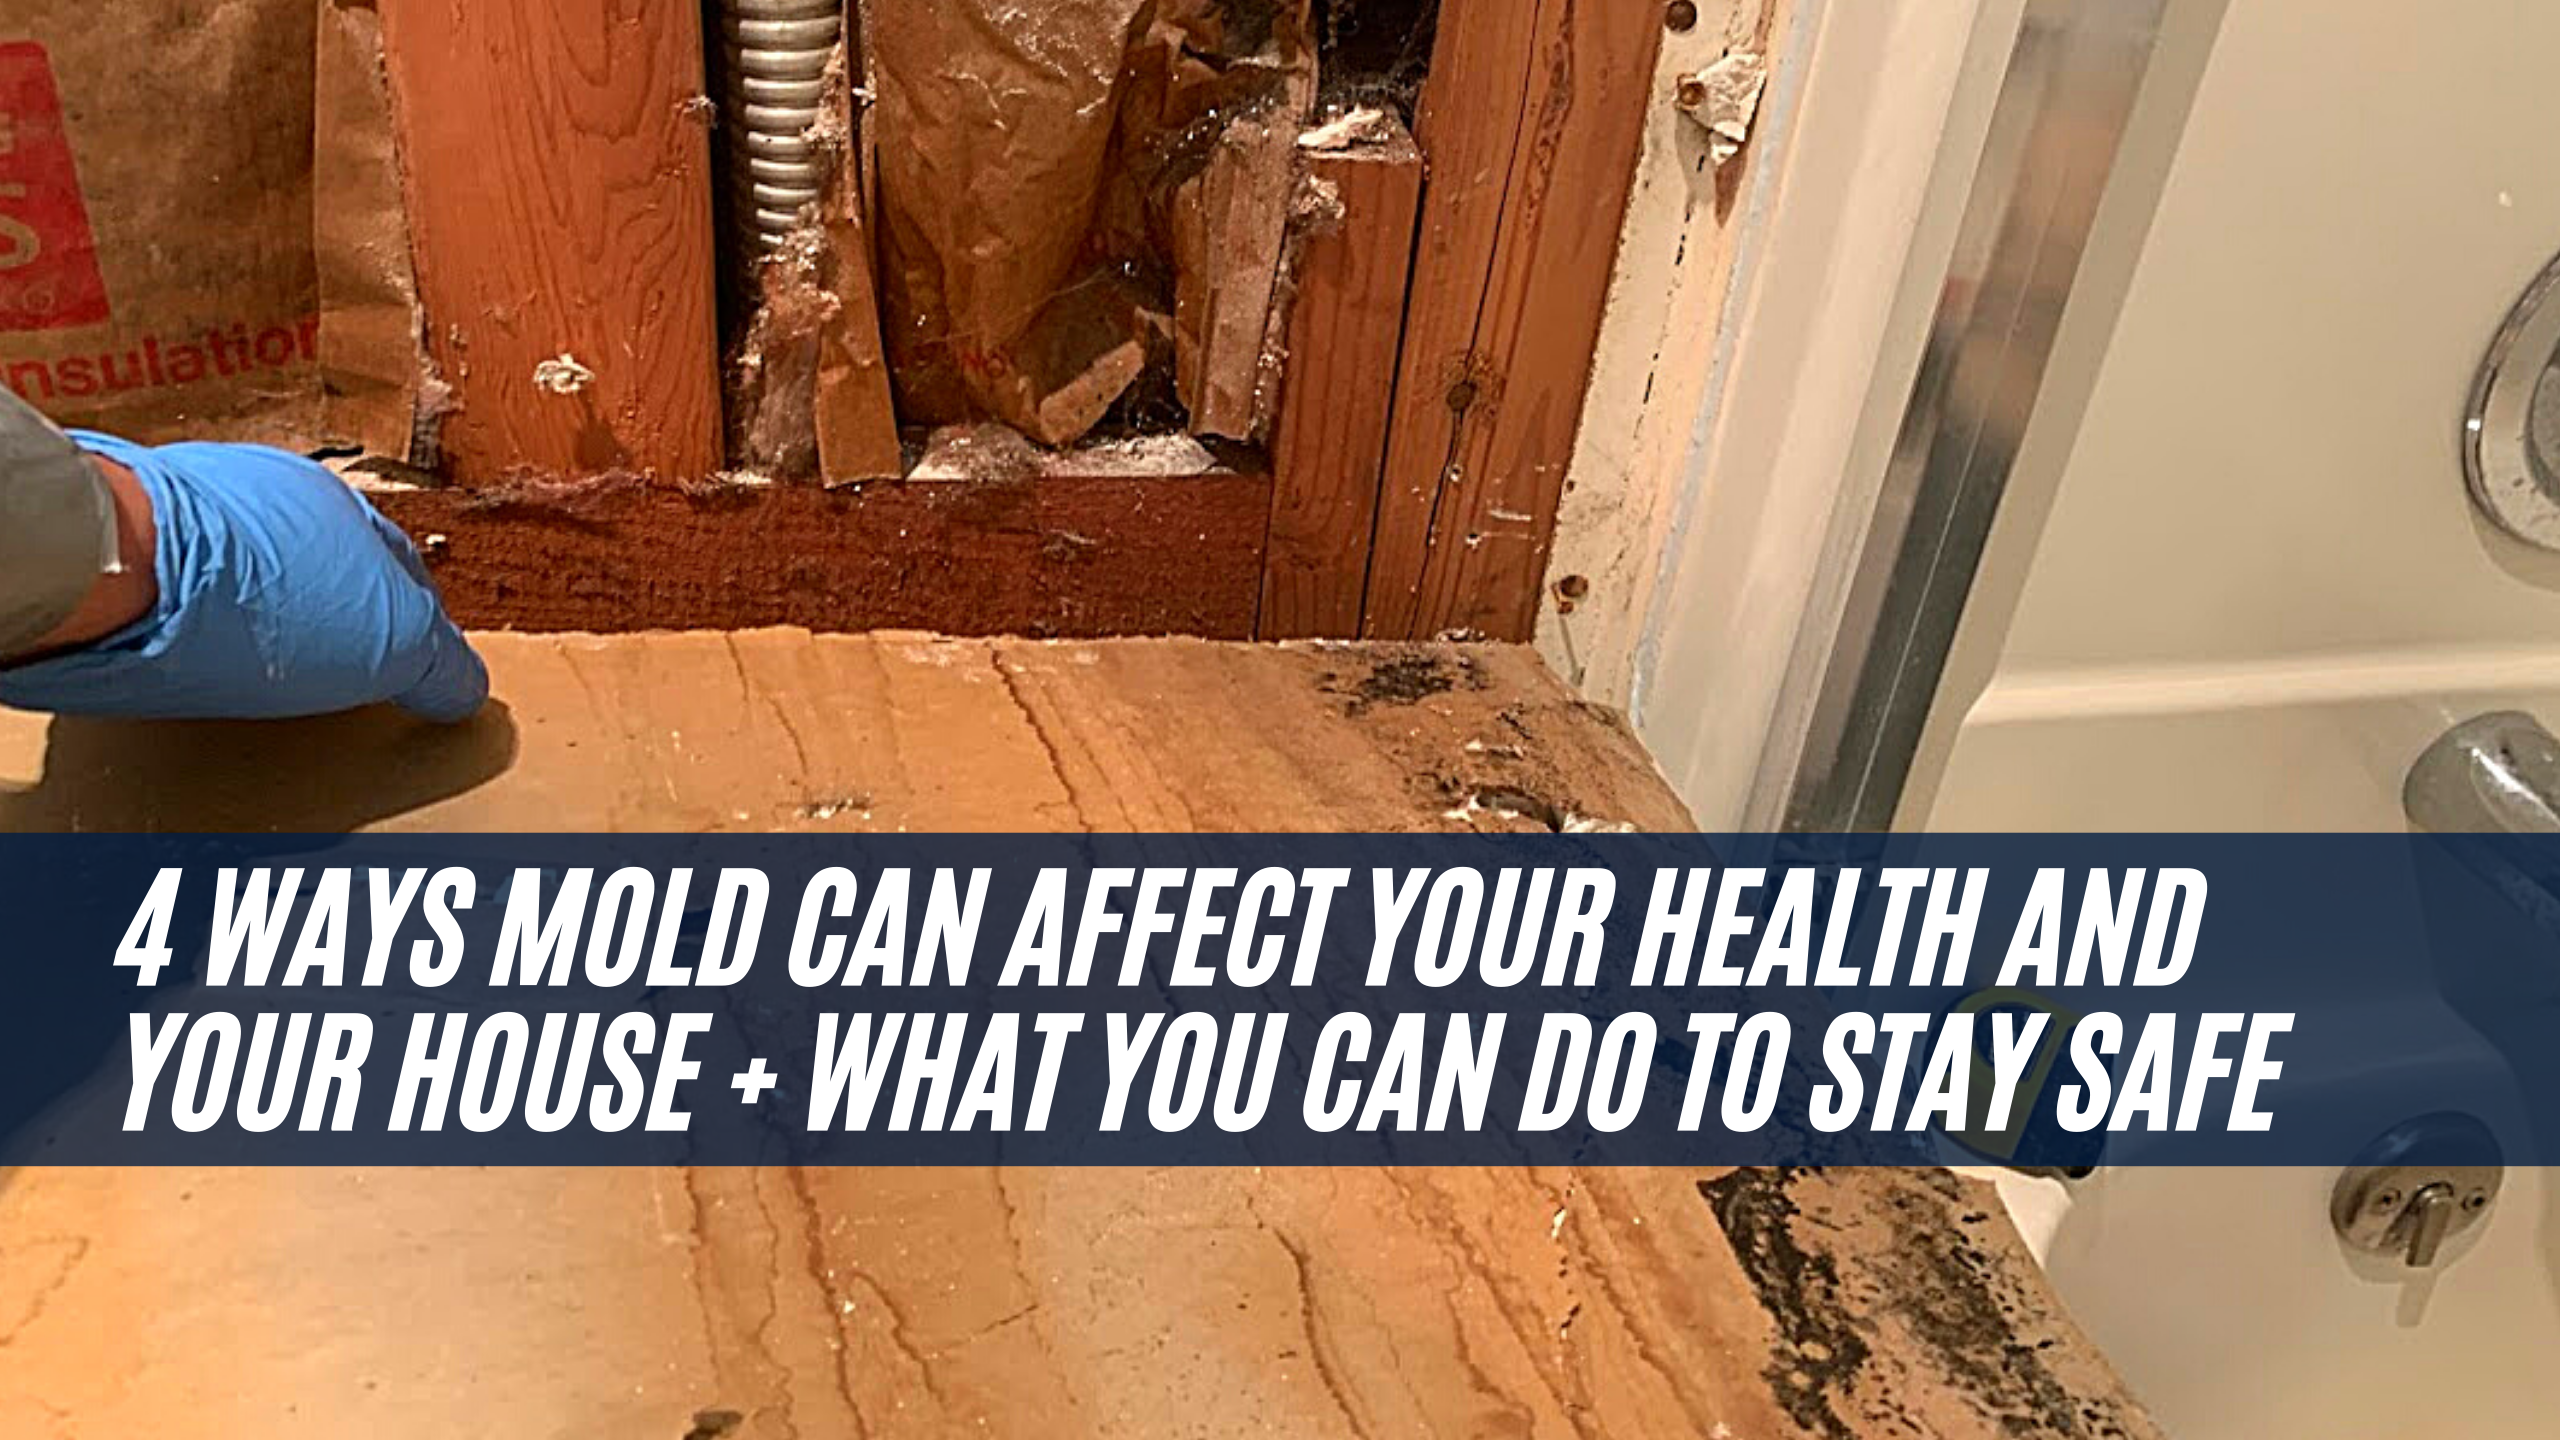 4 ways Mold can affect your Health and your House + What you can do to stay safe